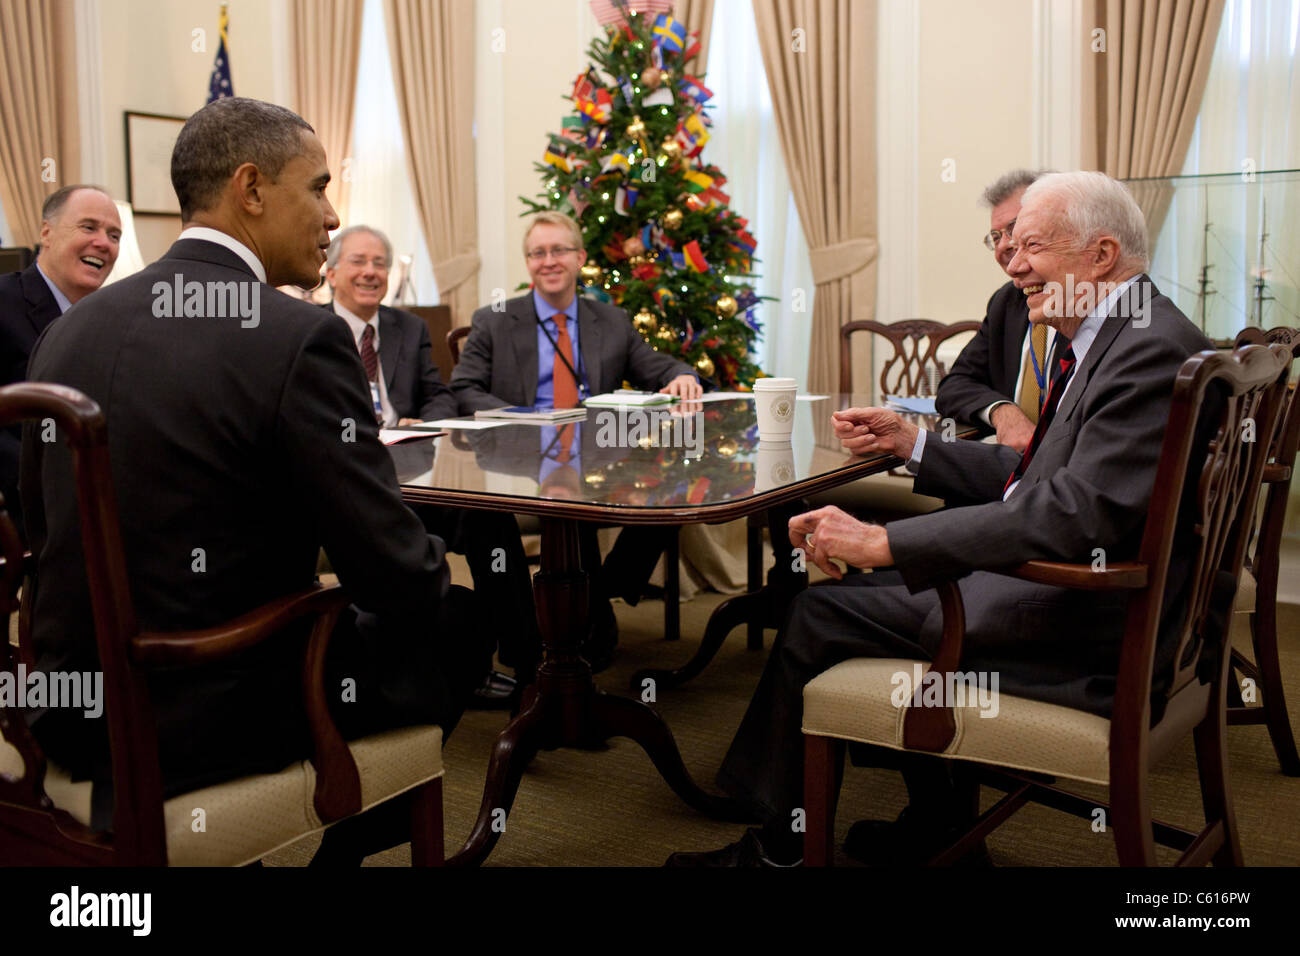 President Obama talks with former President Jimmy Carter during a meeting with National Security Advisor Tom Donilon. - Stock Image